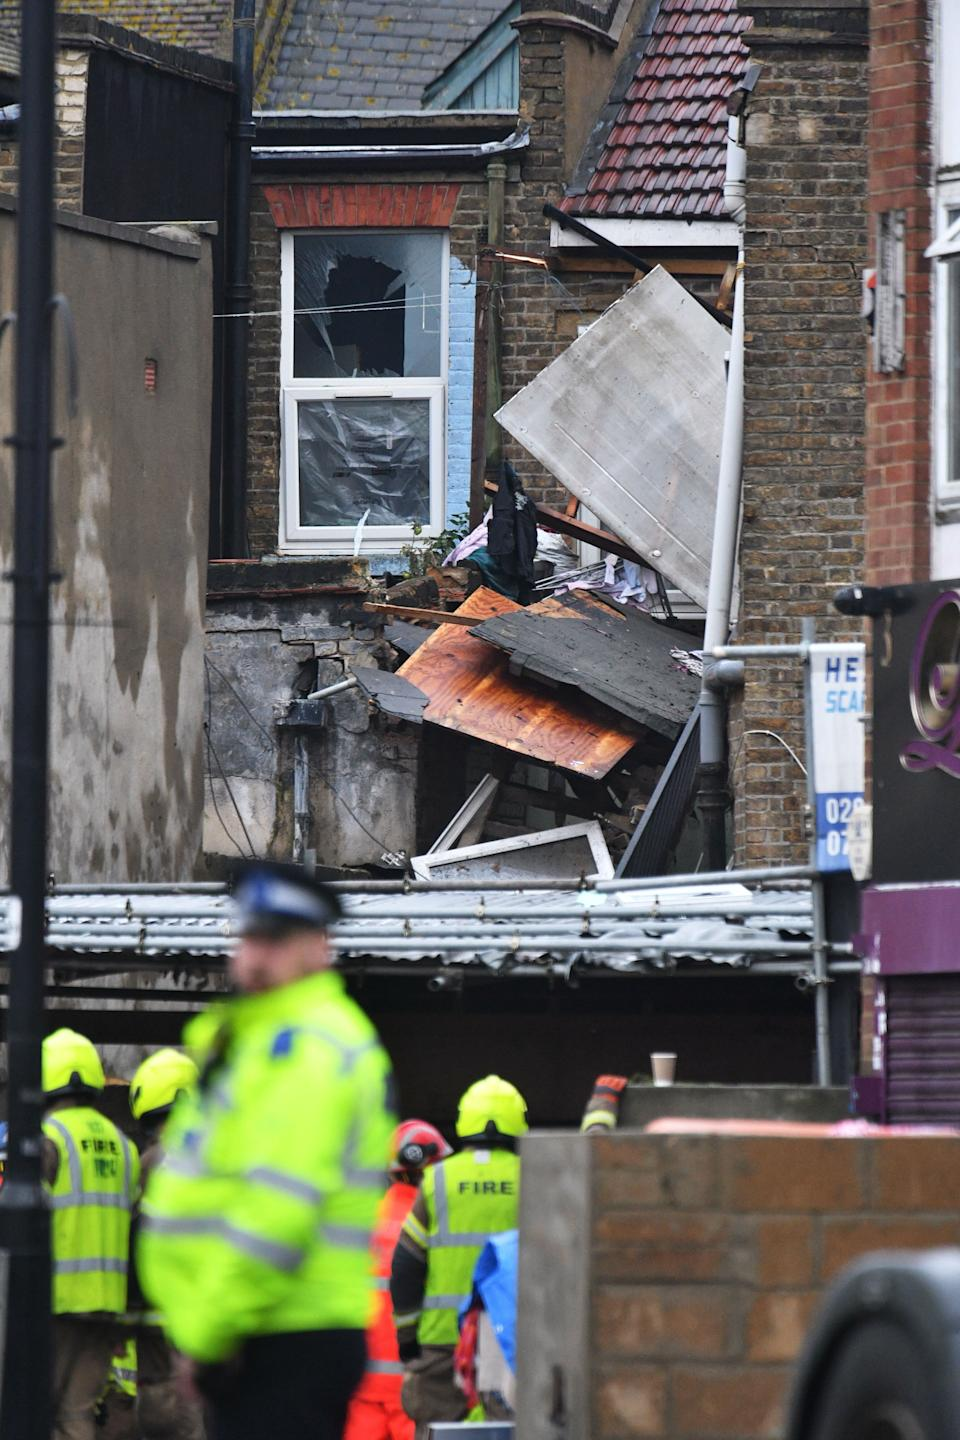 Emergency services at the scene of a suspected gas explosion on King Street in Southall, west London (Photo: PA)